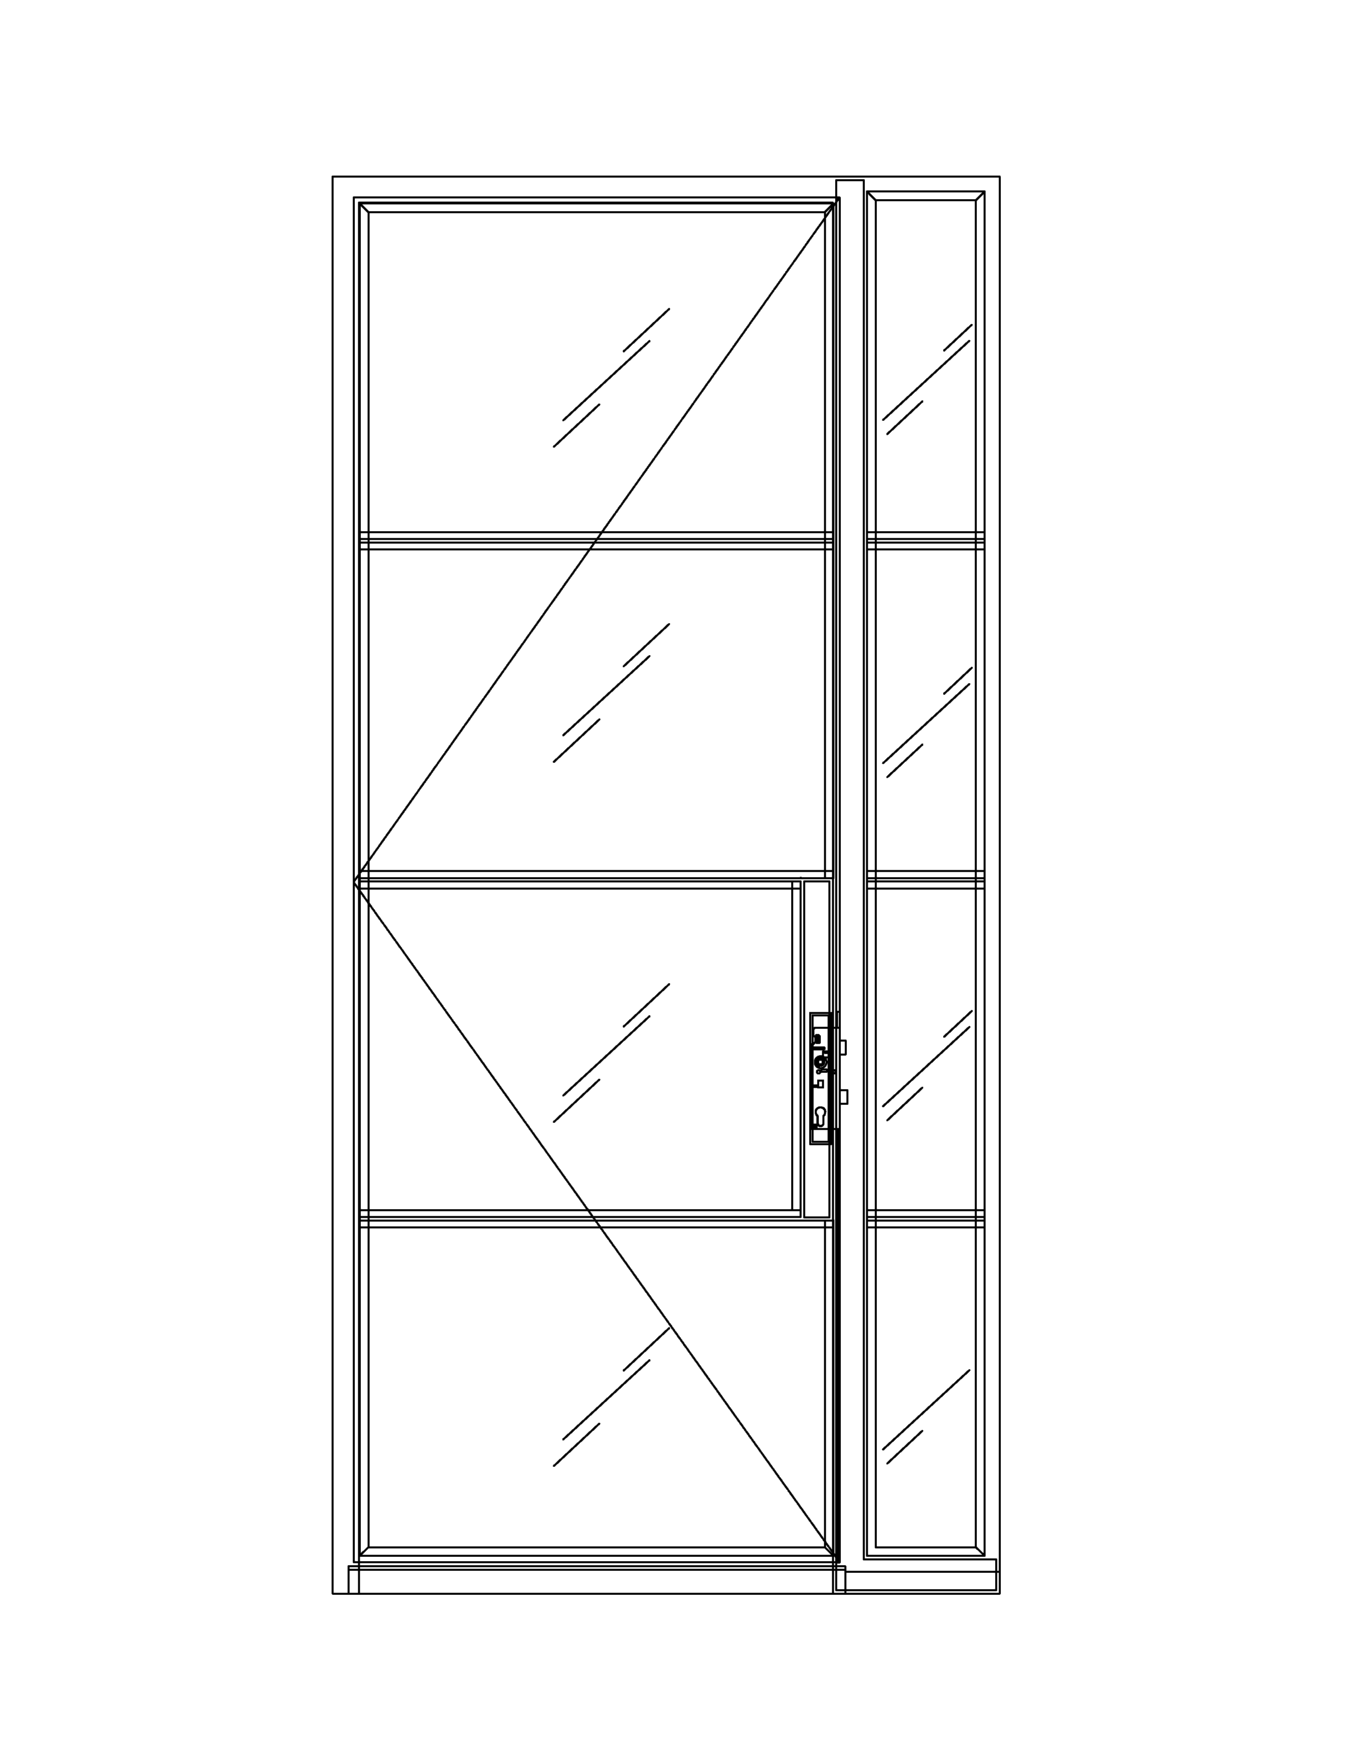 Diagram of Portella Thermally Broken Single Door with Sidelite In-Swing